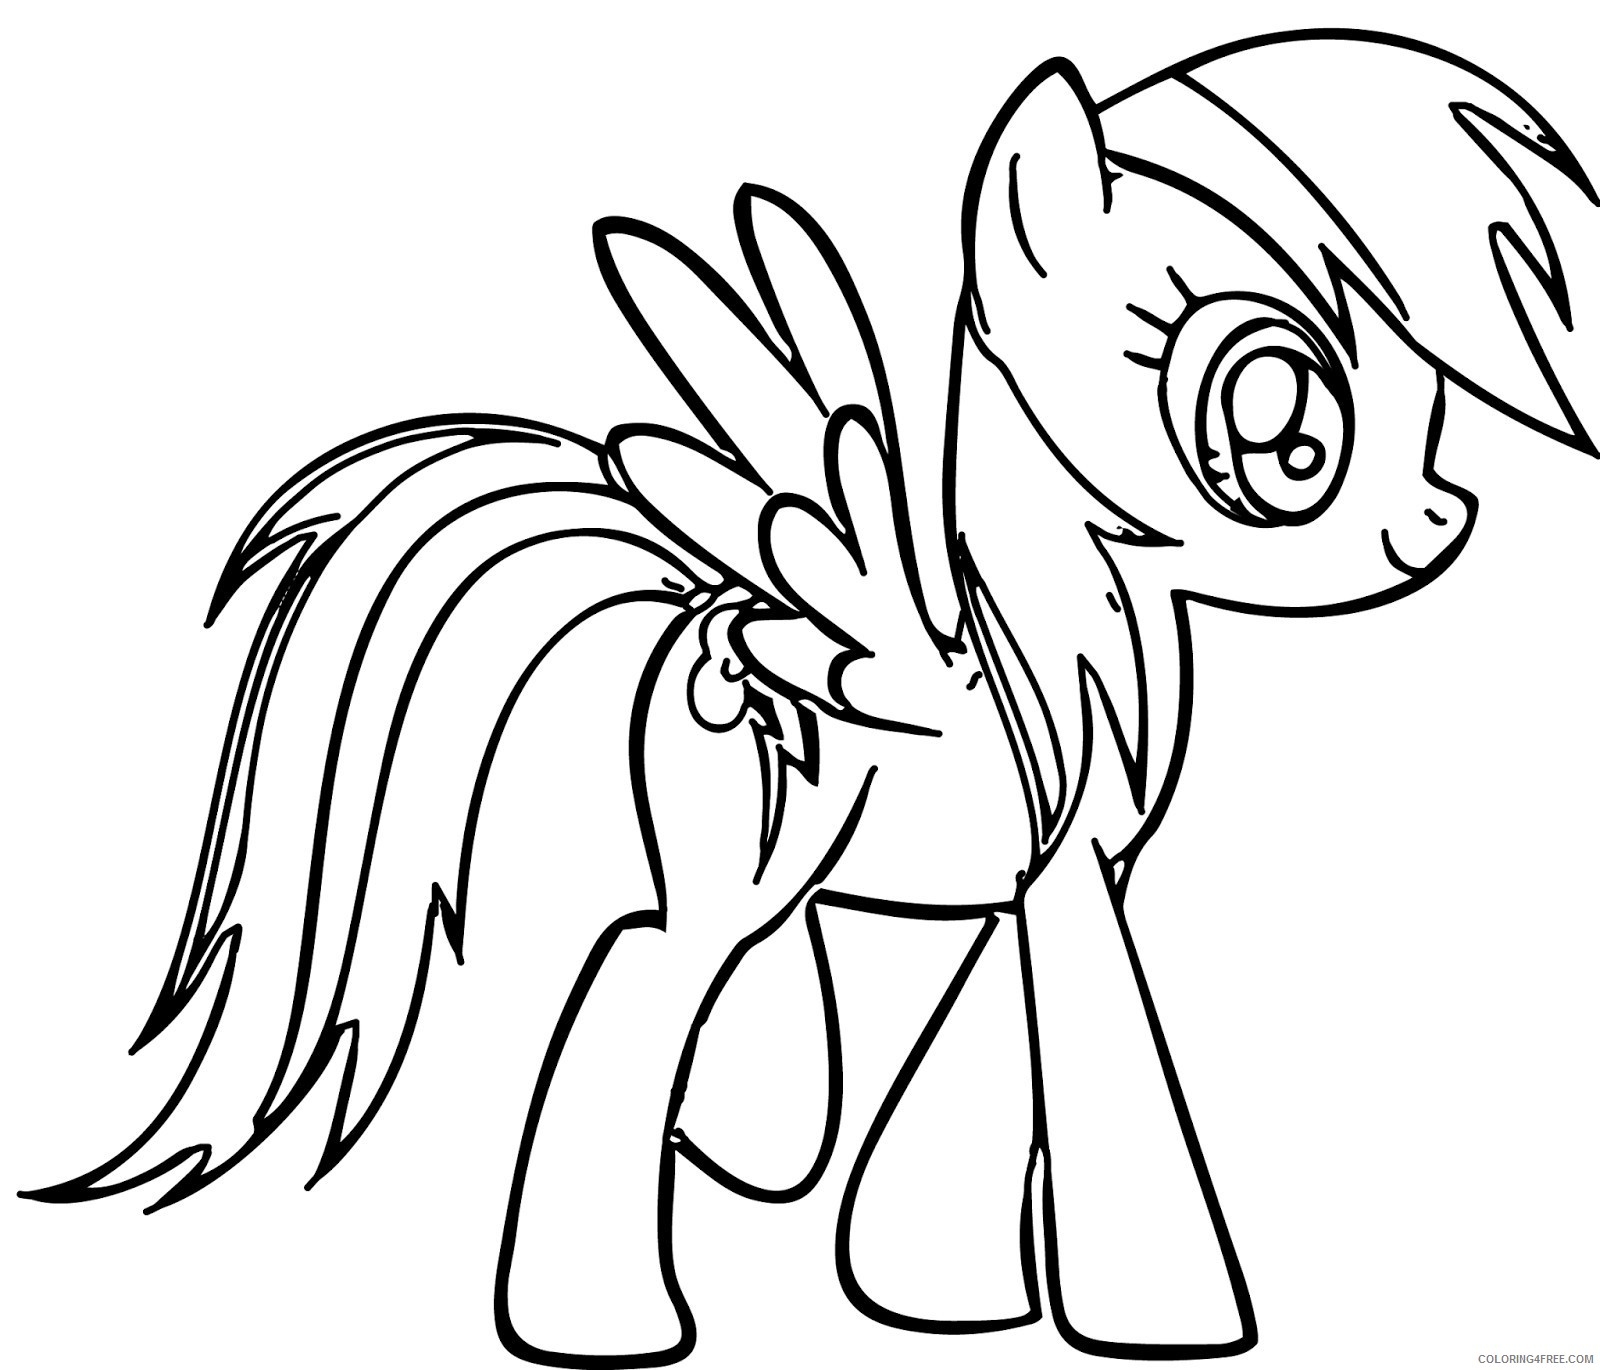 free printable my little pony coloring pages Coloring4free